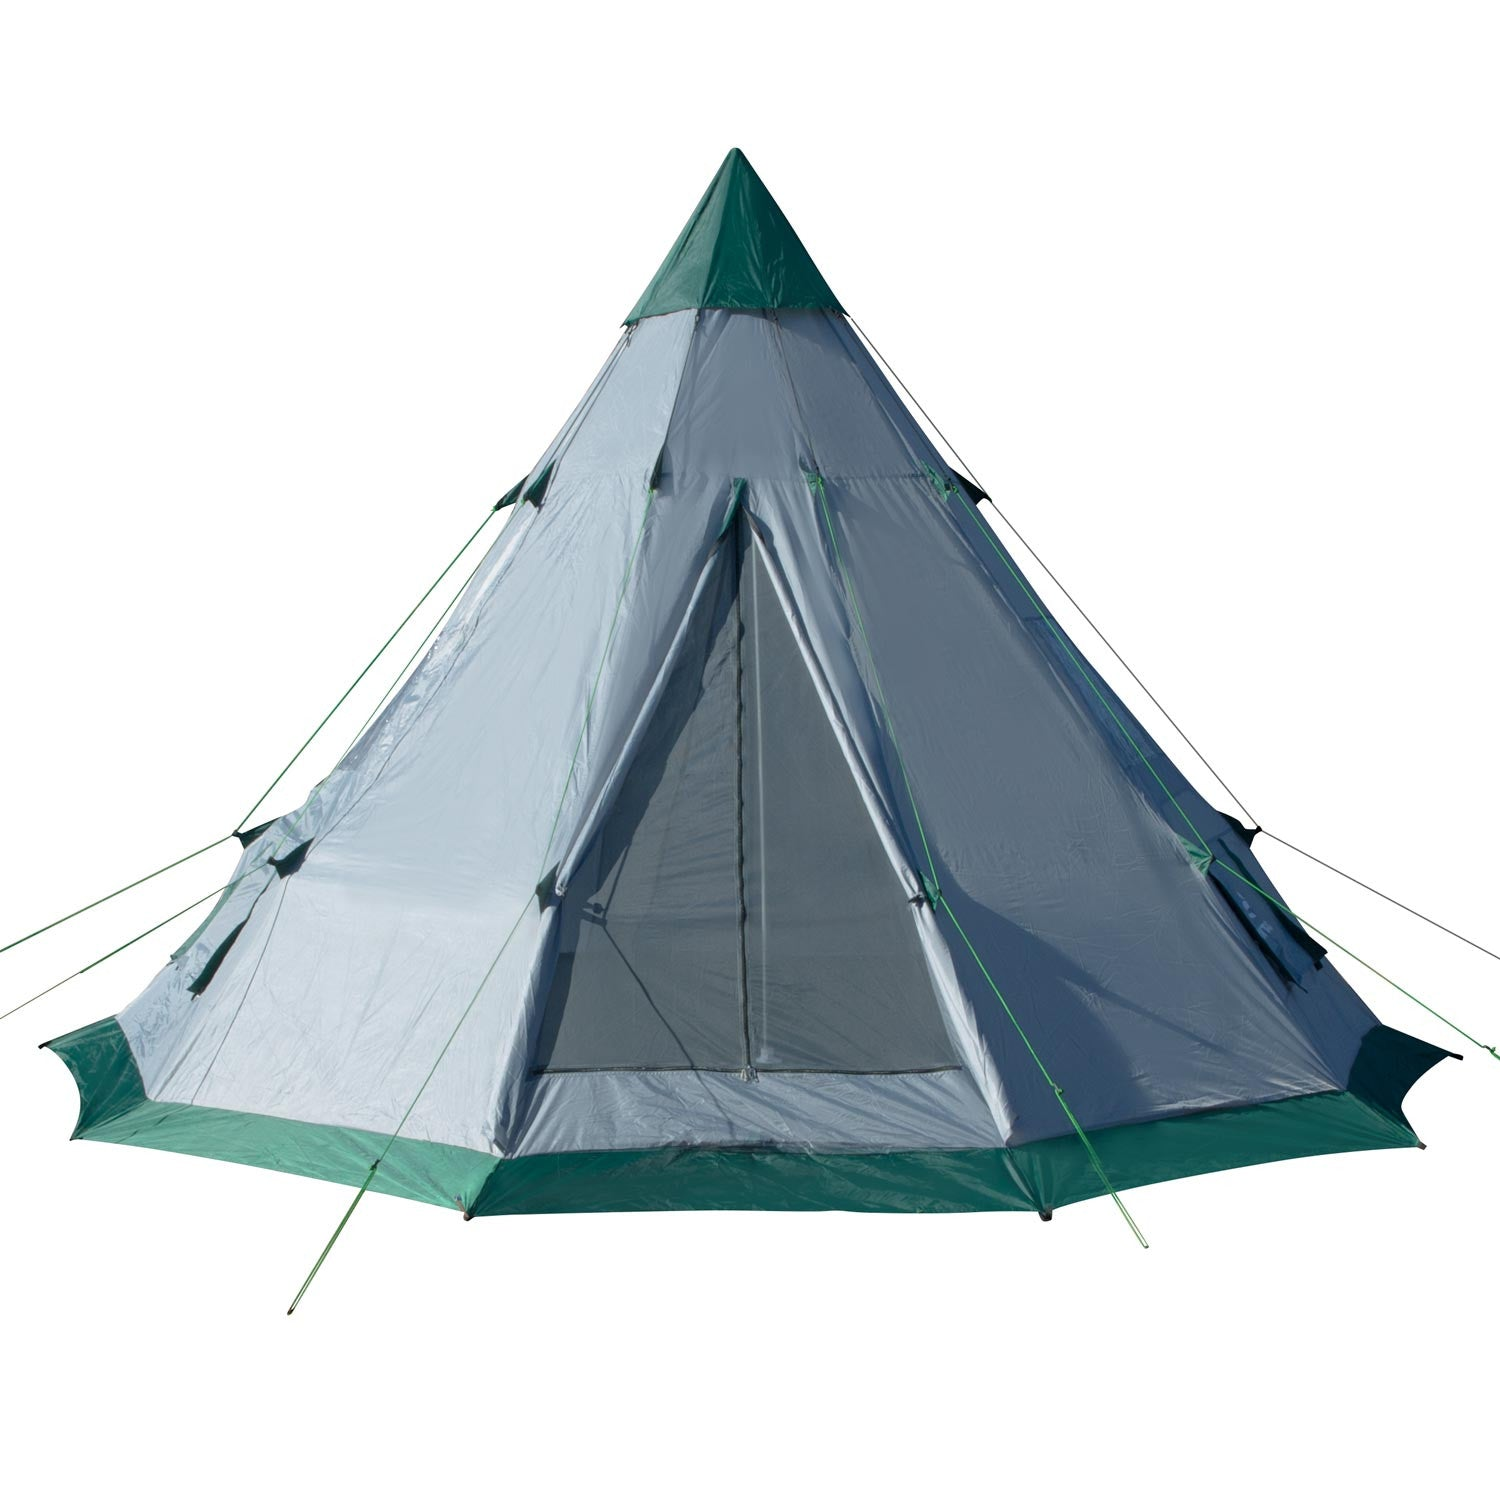 hot sale online 12a6c f9618 Winterial Teepee Tent: 6-7 Person Tent